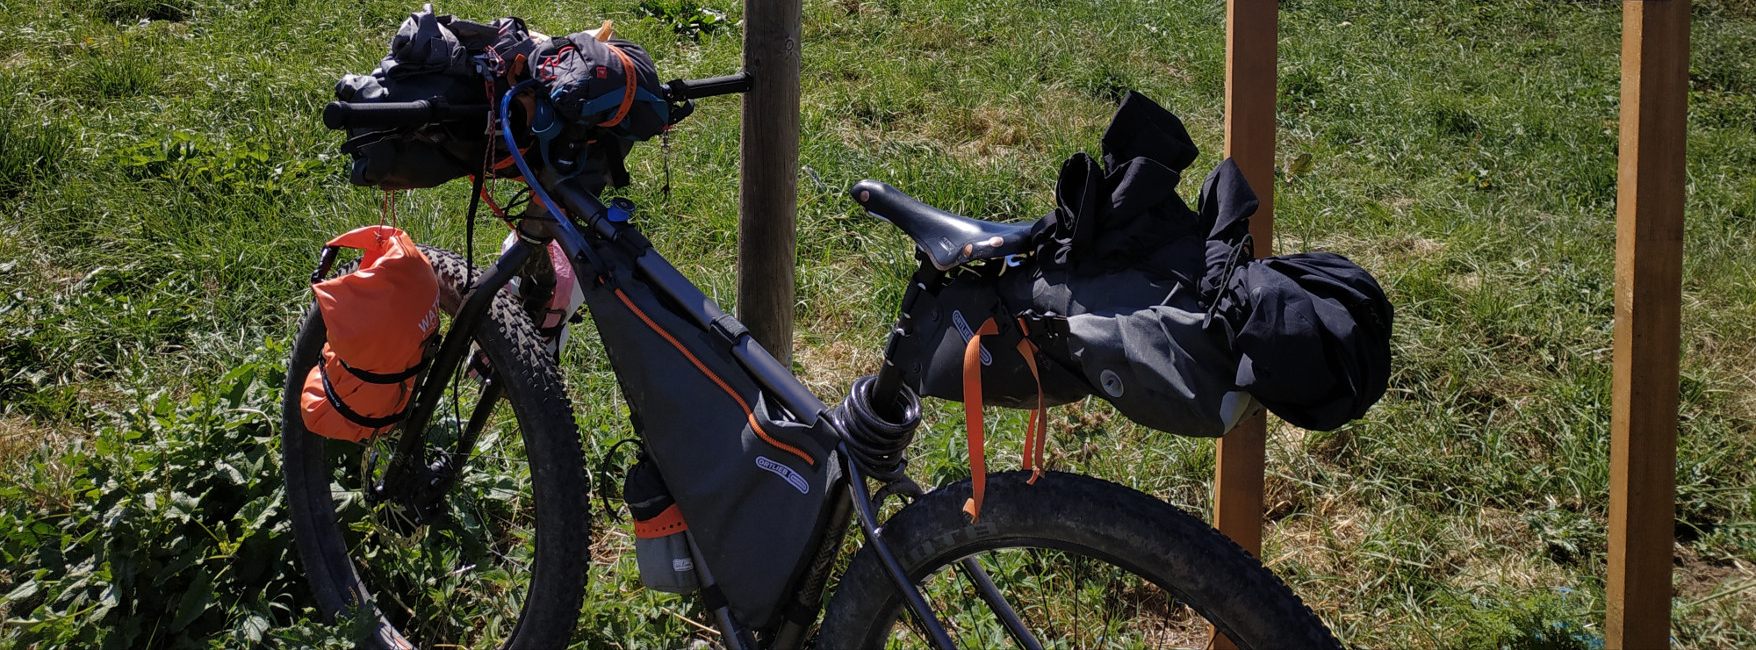 VTT bikepacking